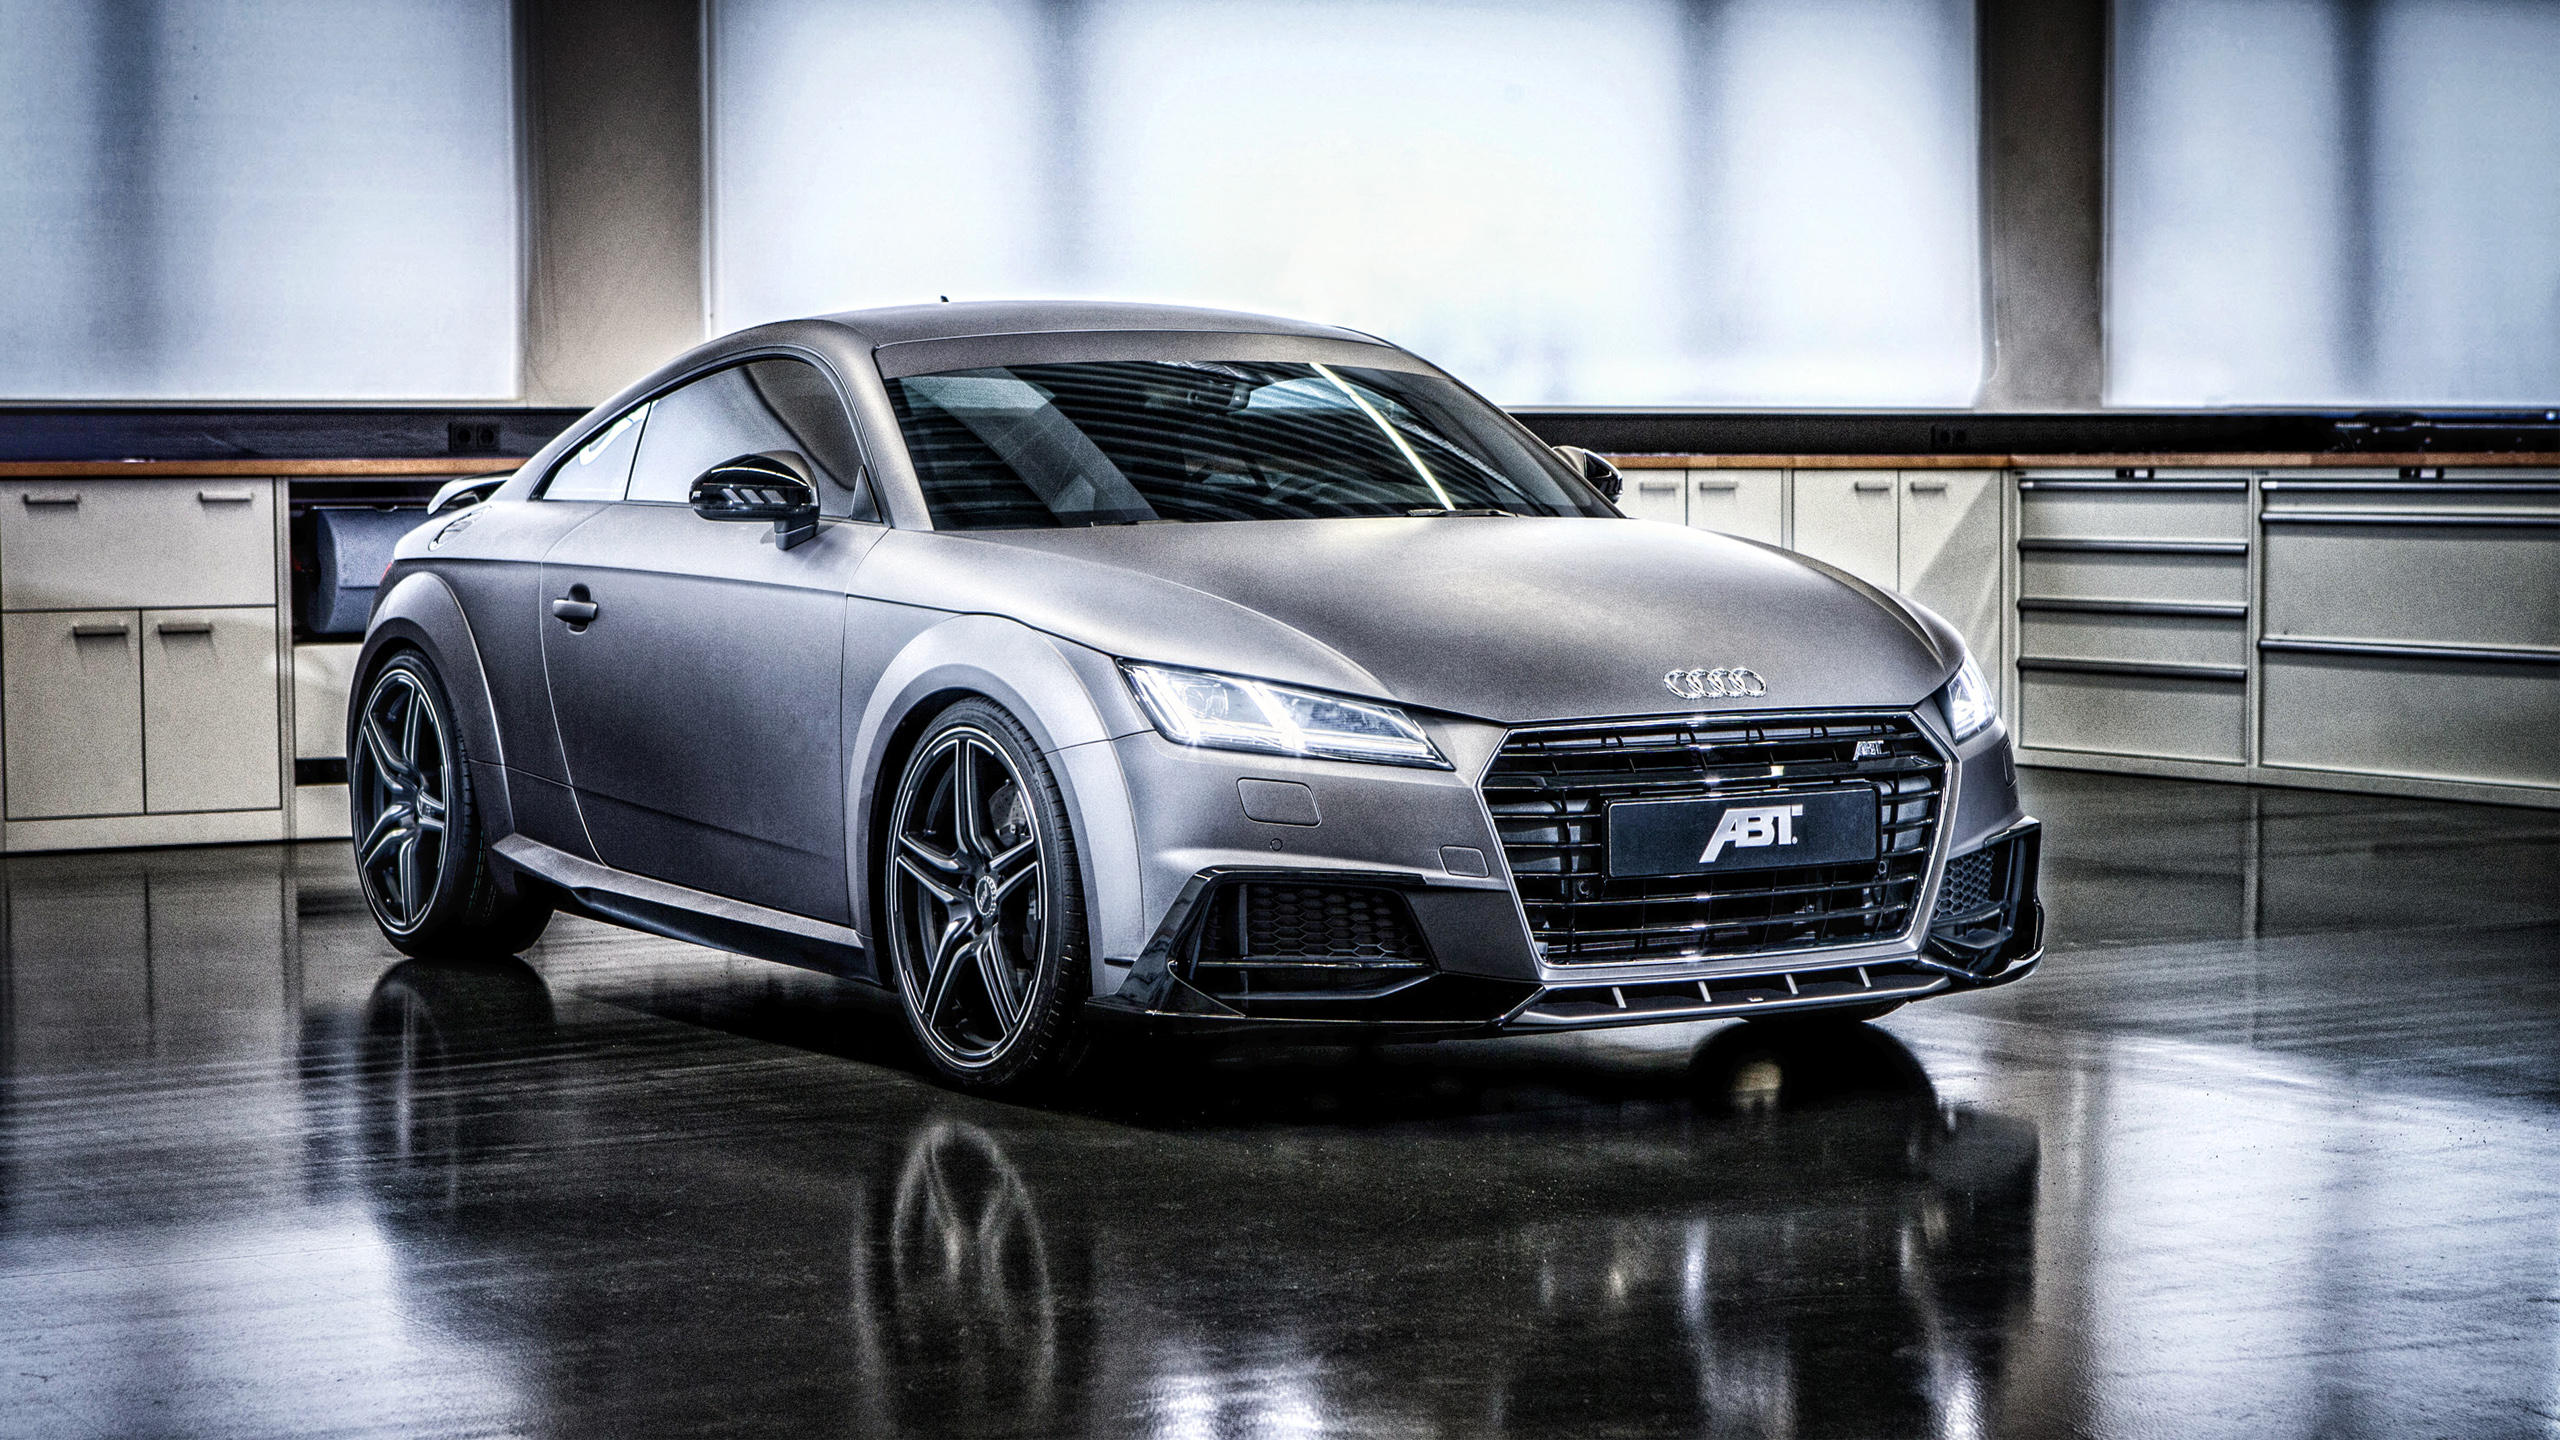 2015 abt audi tt rs wallpaper hd car wallpapers id 5706. Black Bedroom Furniture Sets. Home Design Ideas